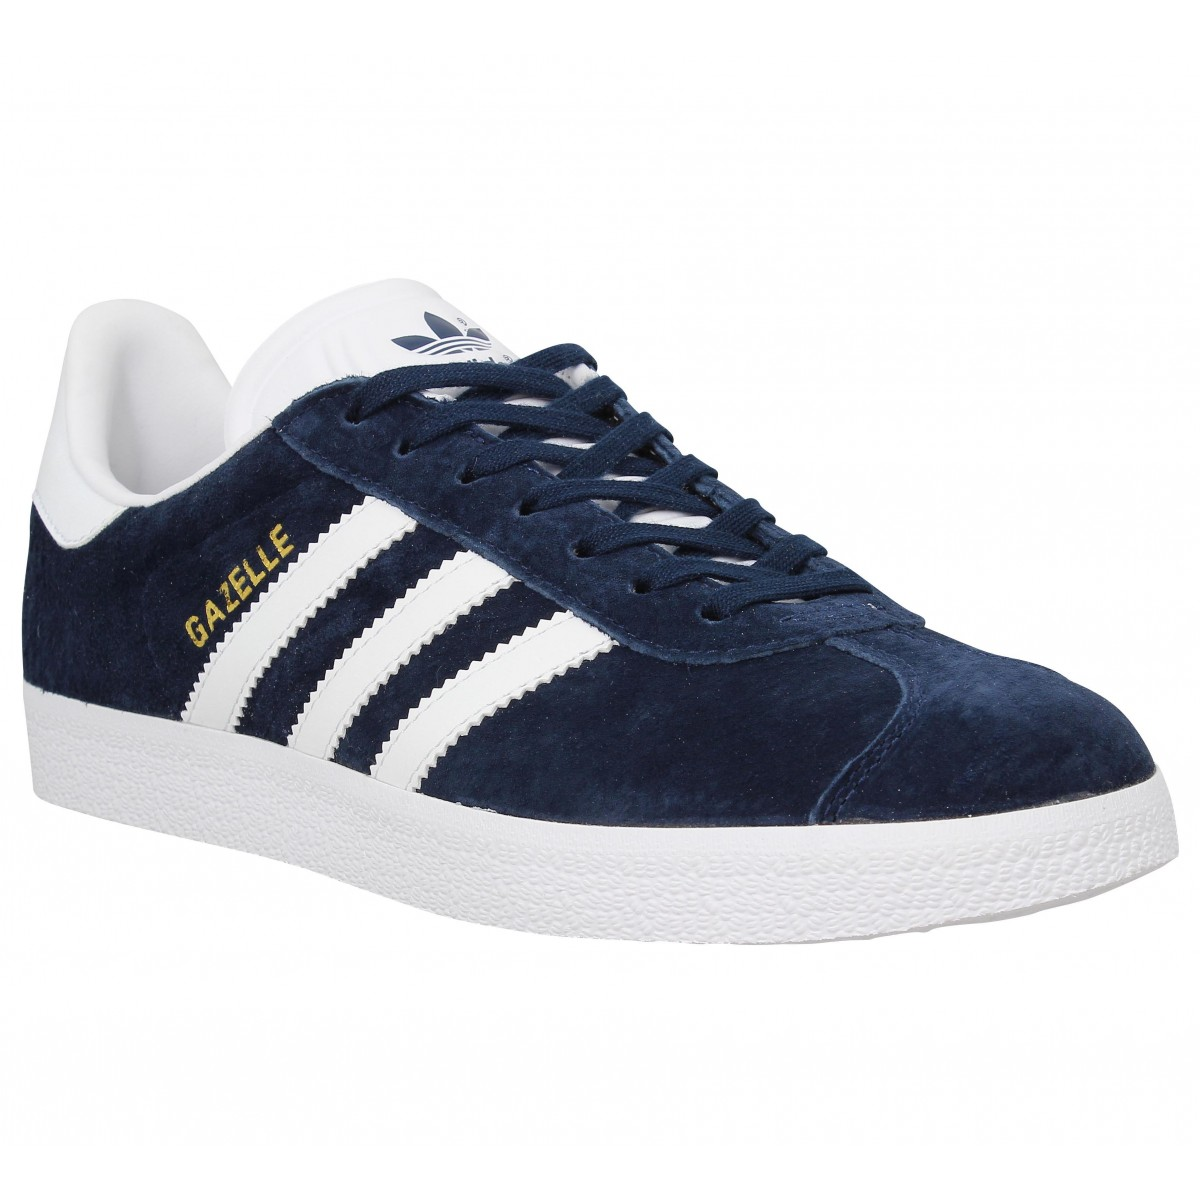 soldes adidas gazelle marine femme fanny chaussures. Black Bedroom Furniture Sets. Home Design Ideas